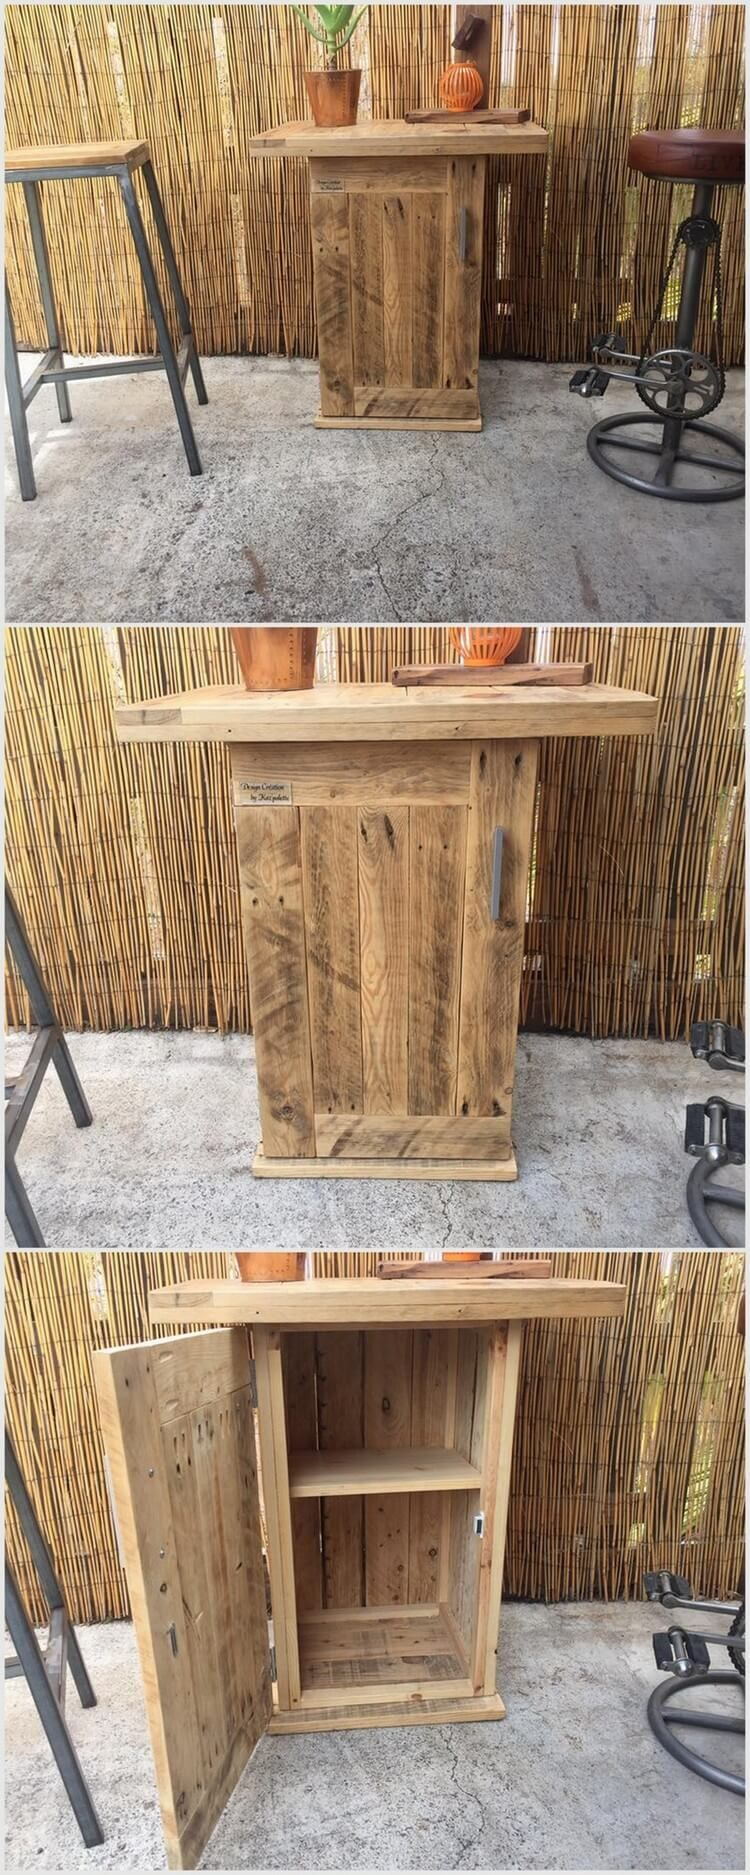 Used Shipping Wood Pallets Table Ideas | Bar furniture for ...